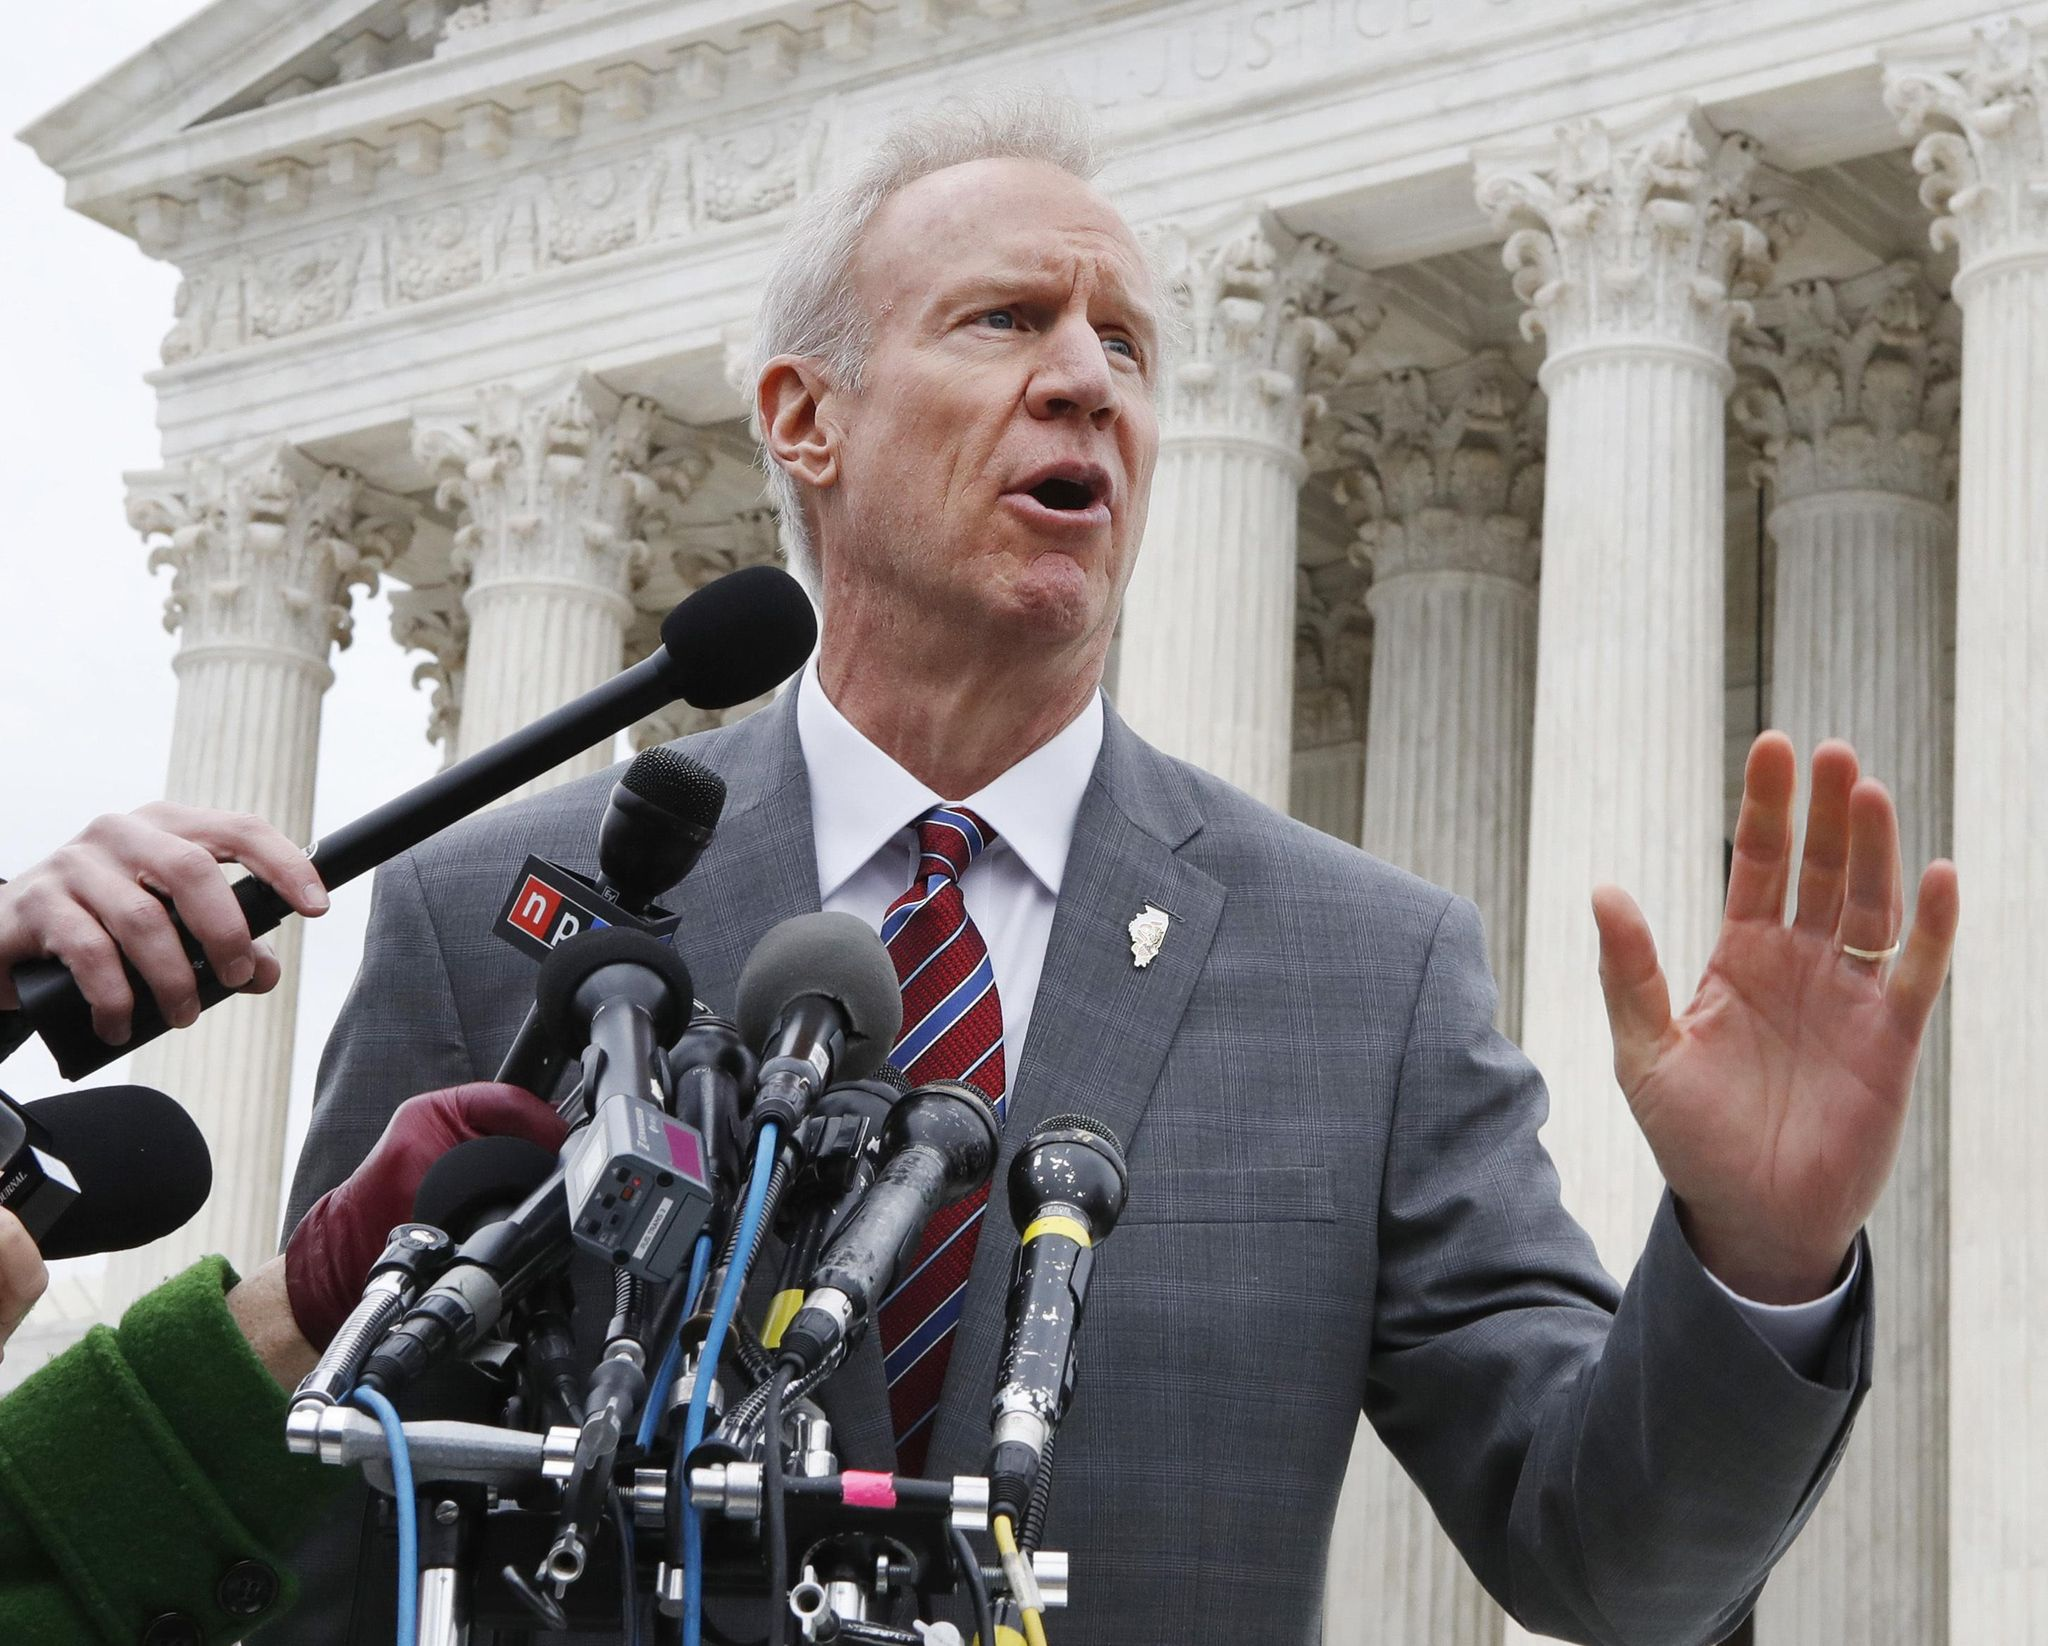 photo image AP FACT CHECK: No proof Rauner profits off family separation